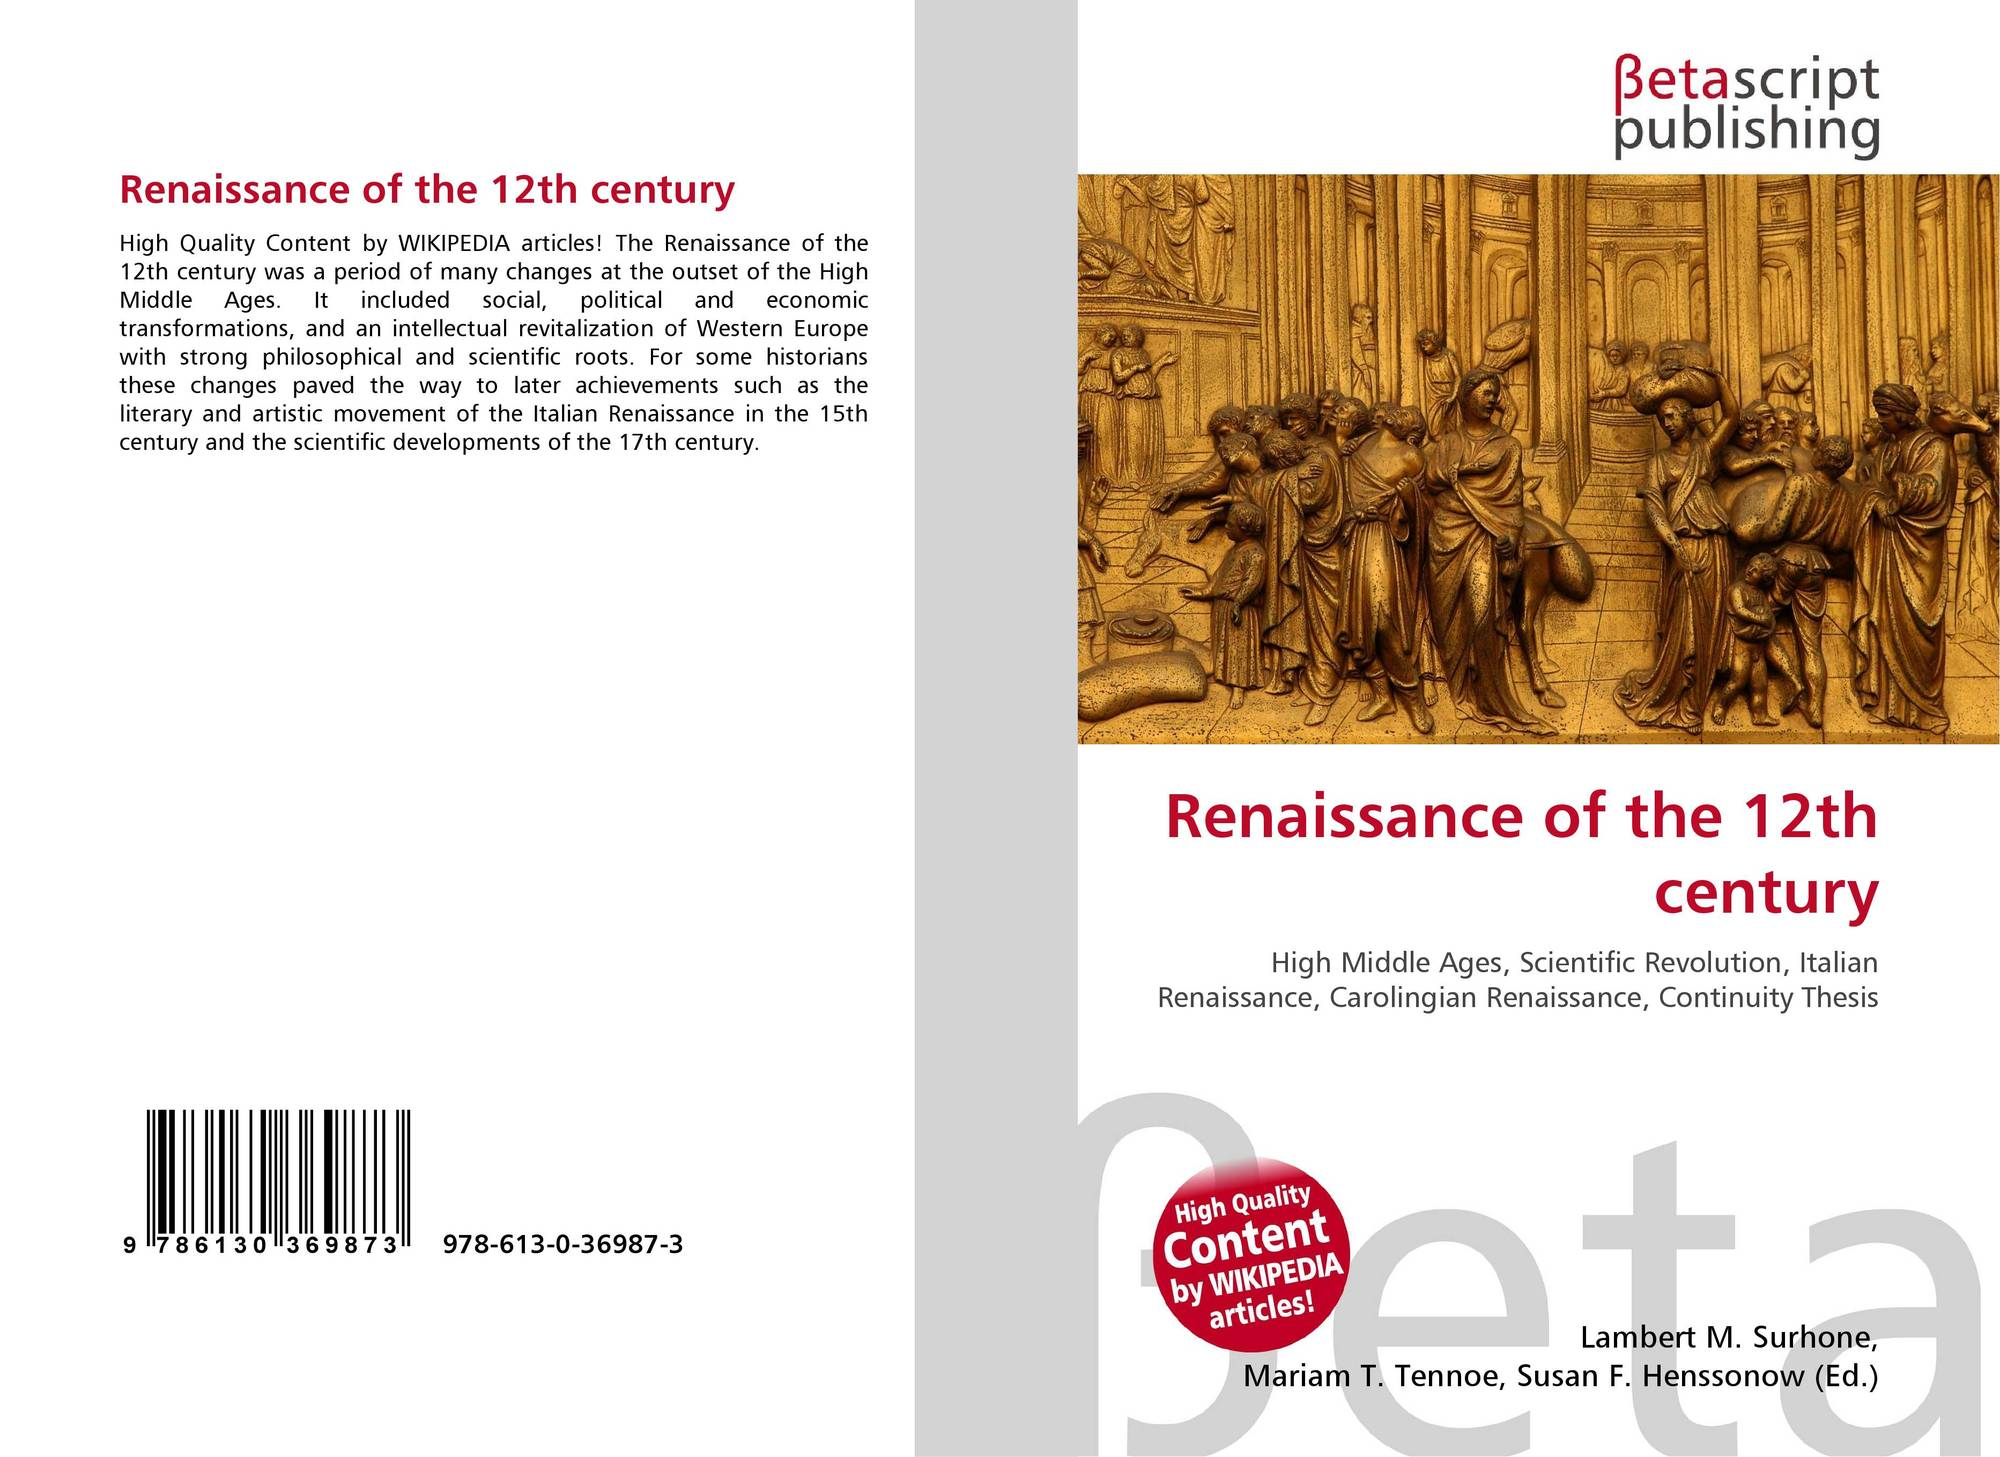 continuity thesis scientific revolution Professionally written essays on this topic: the scientific revolution comparison of scientific revolution of 1500 and the industrial revolution of 1750.